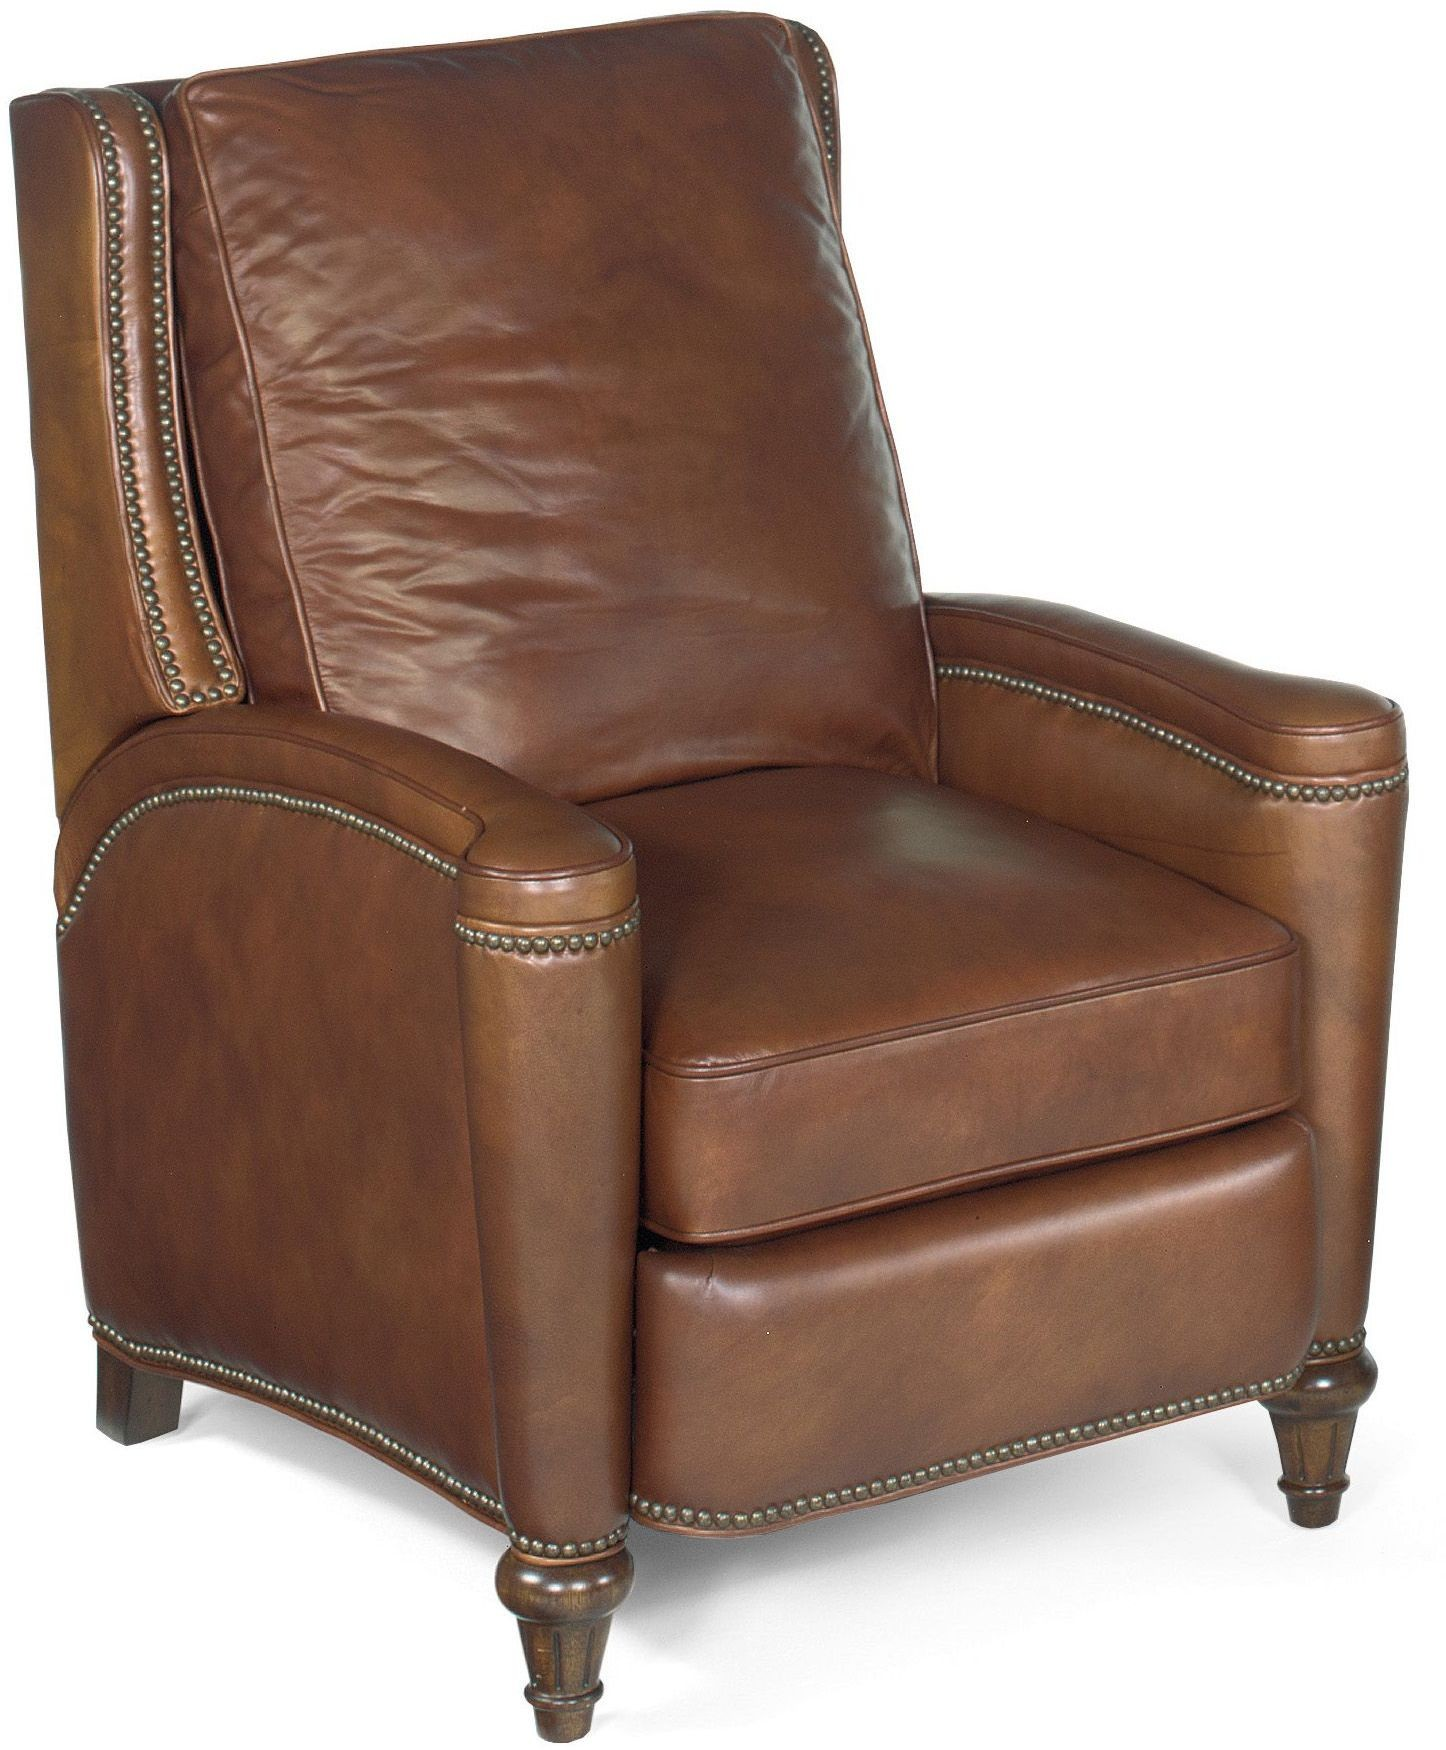 Rylea Light Brown Leather Recliner From Hooker Coleman